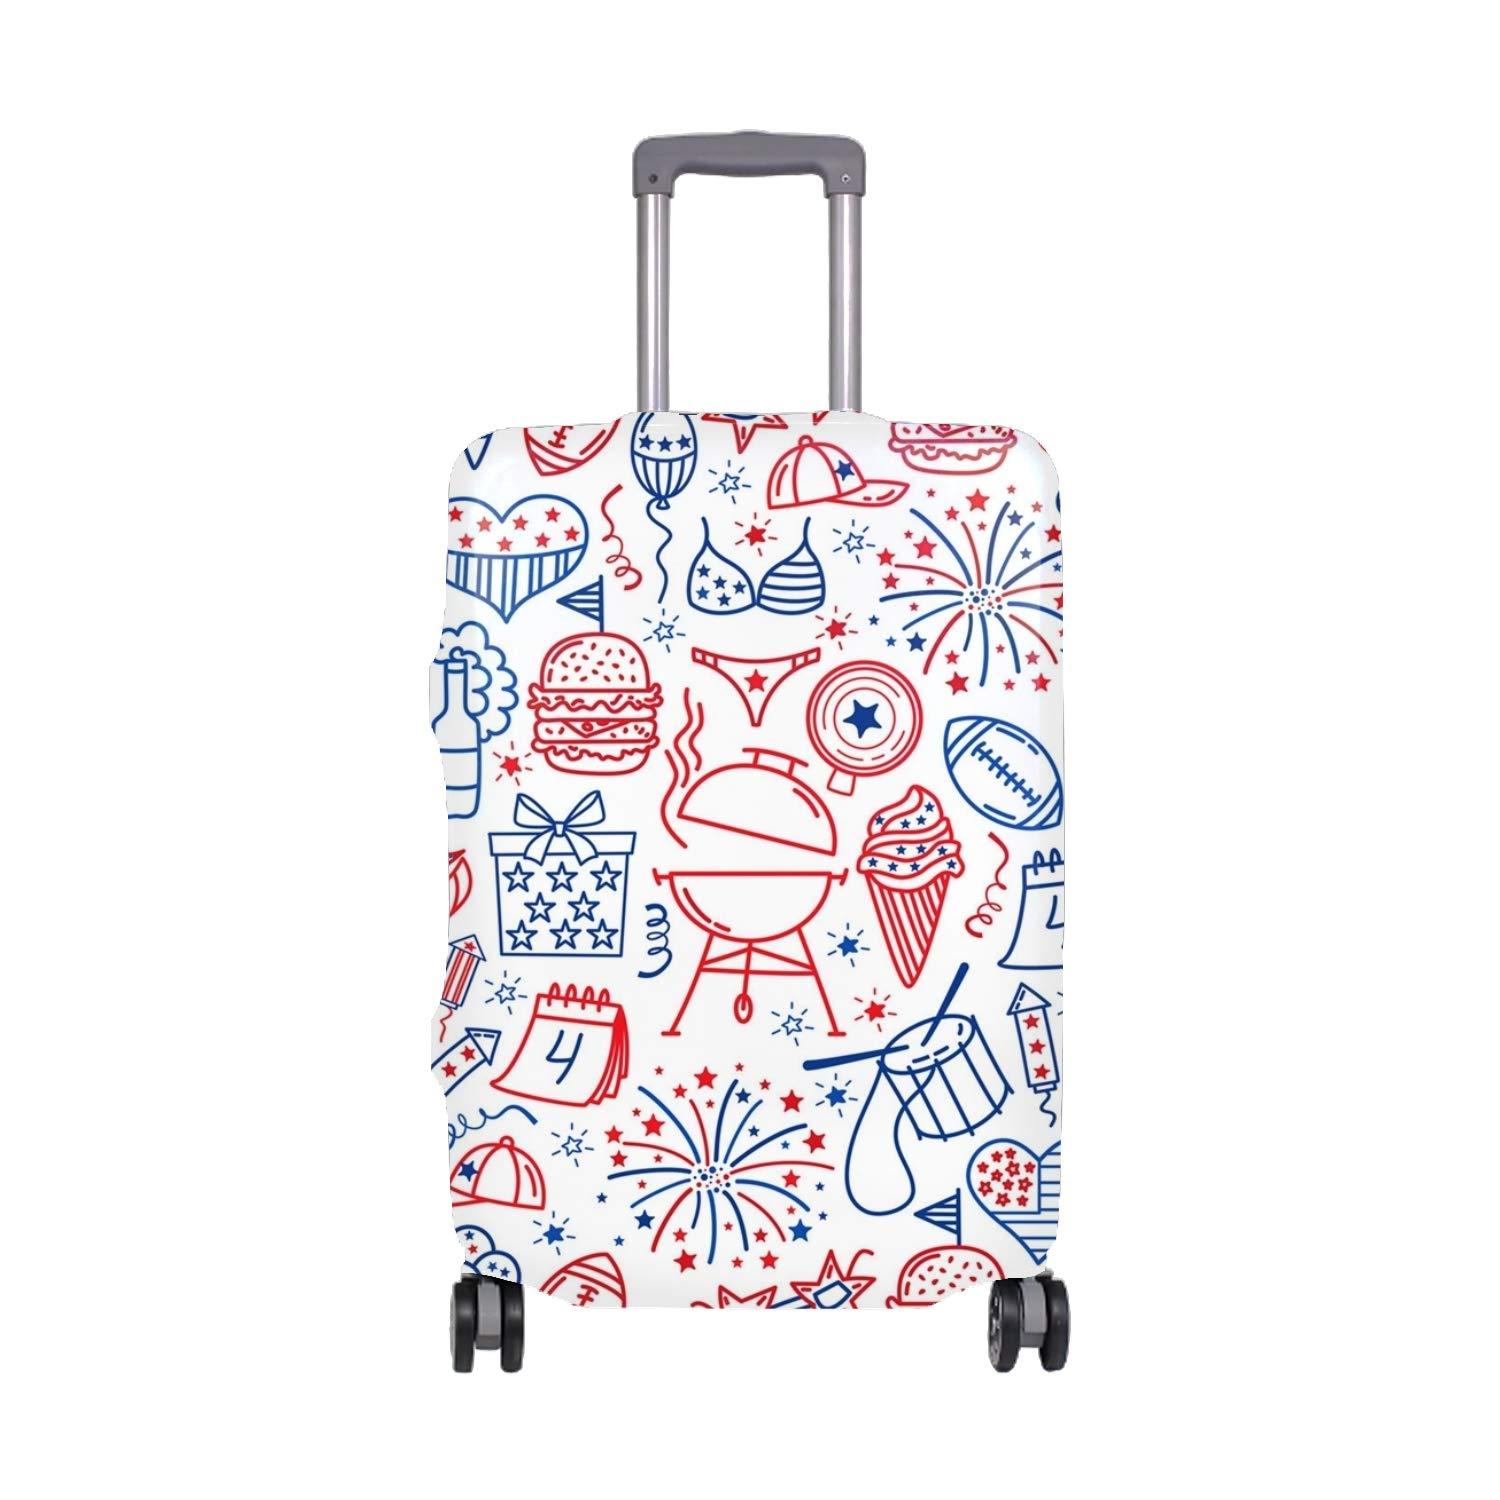 Luggage Cover Protective Red Skull Printing Suitcase Protector Covers with Zipper for Travel